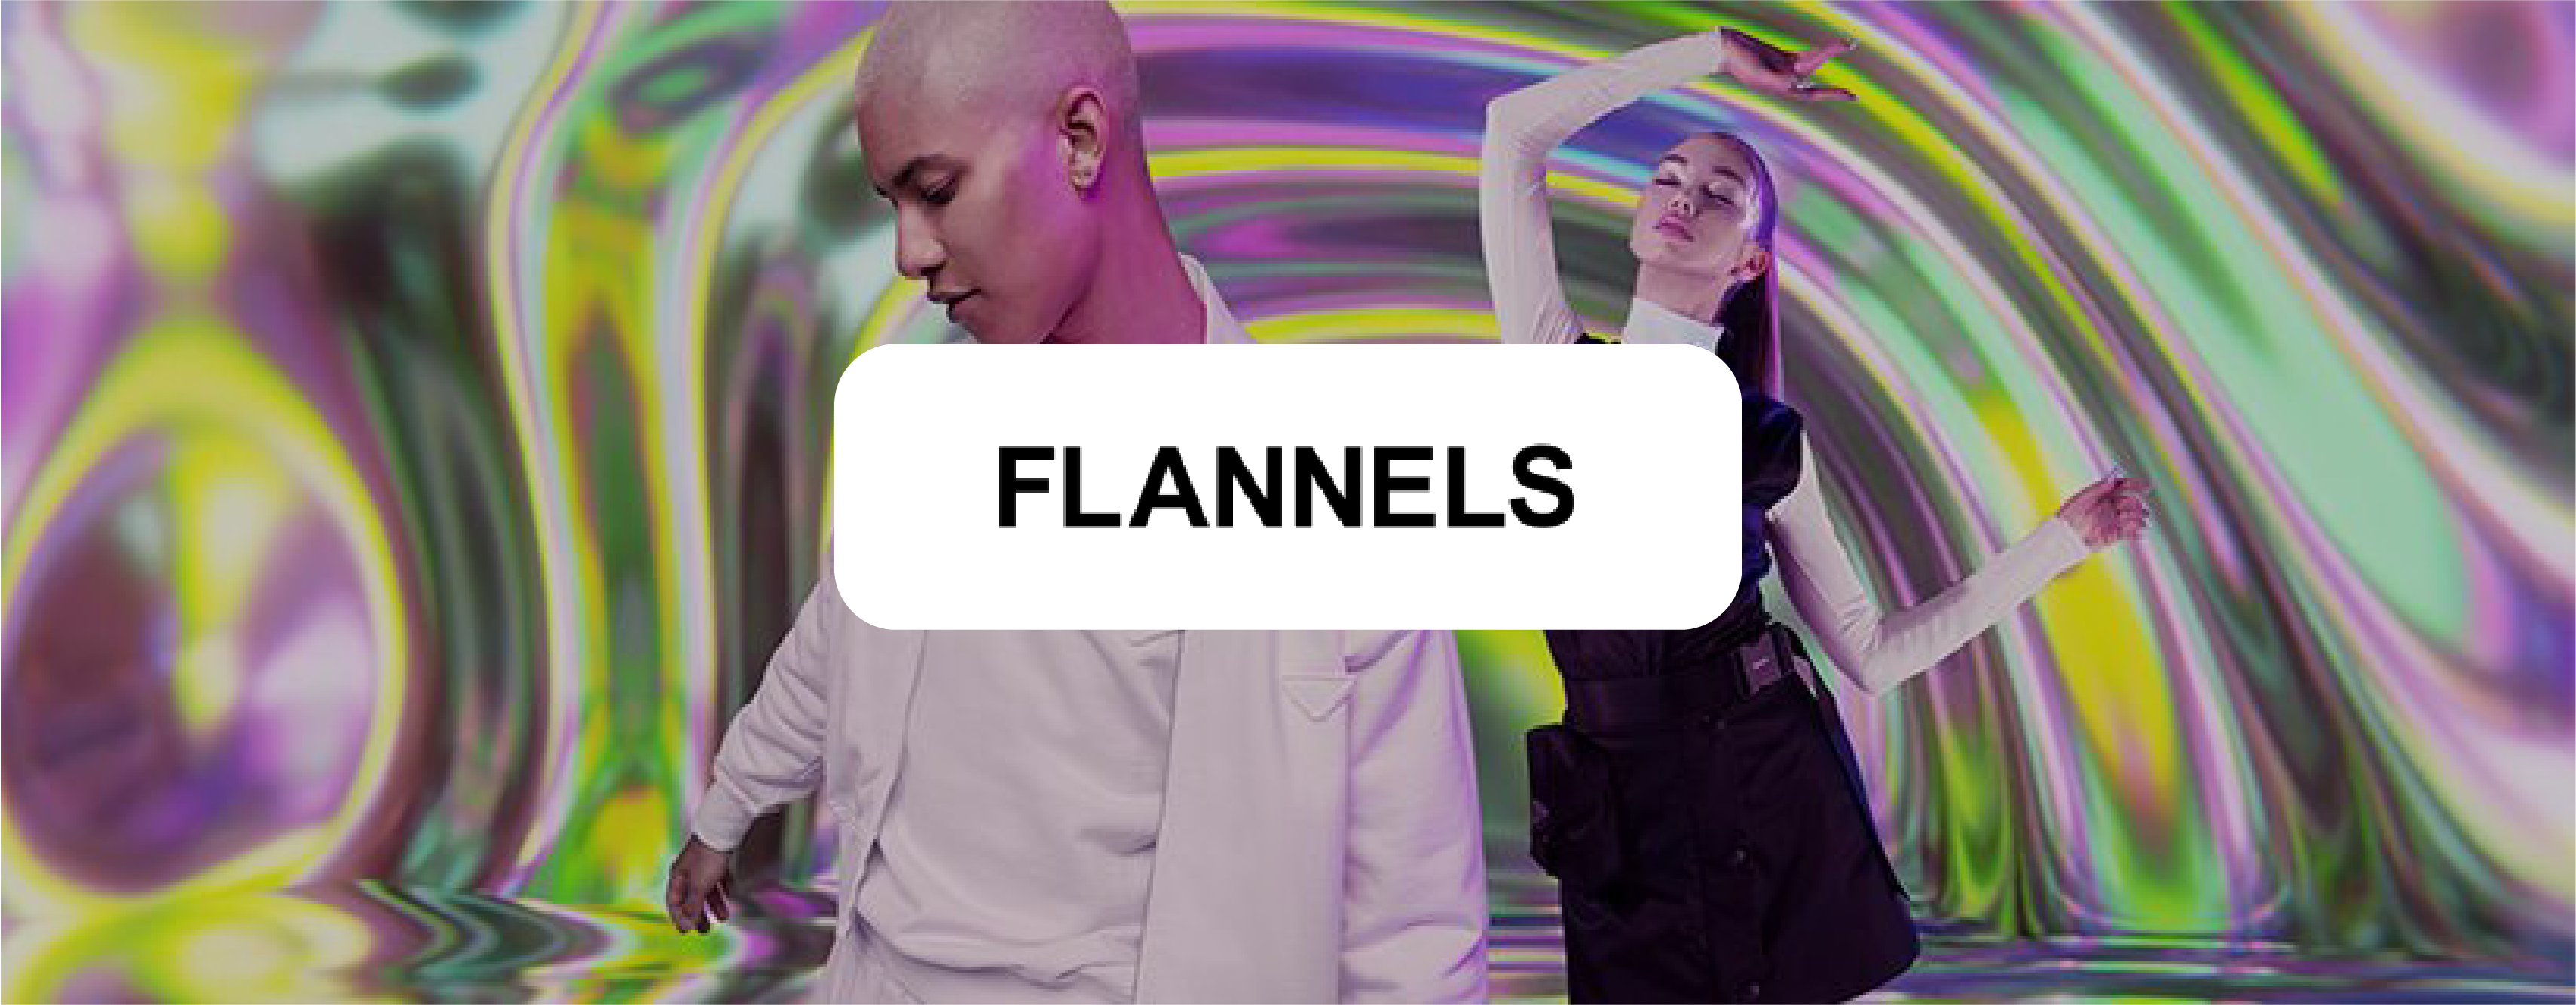 Flannels logo and background